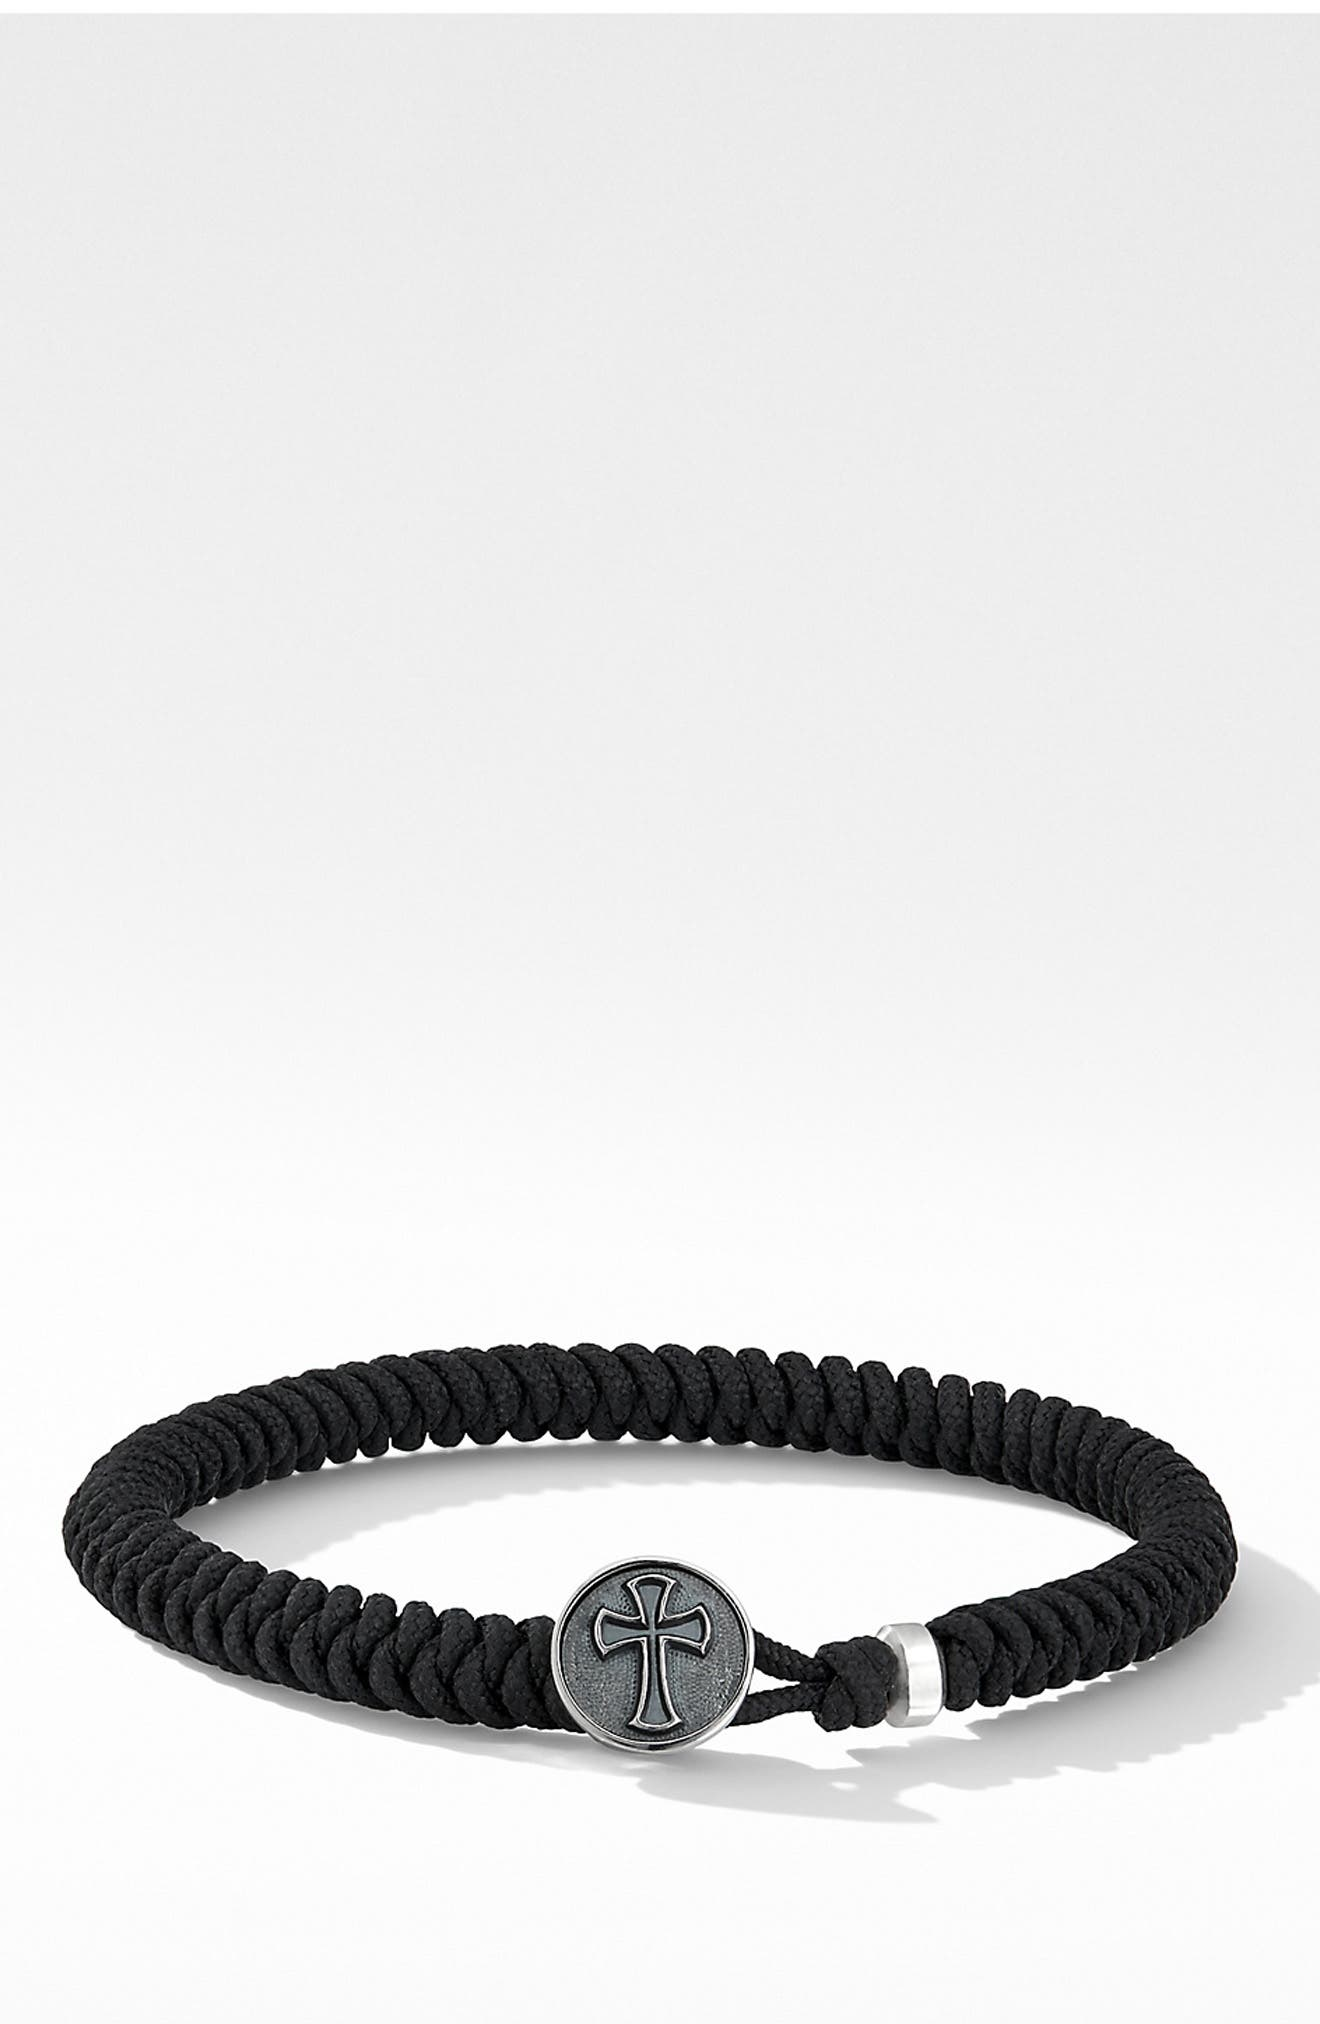 DAVID YURMAN, Woven Cross Bracelet, Main thumbnail 1, color, BLACK